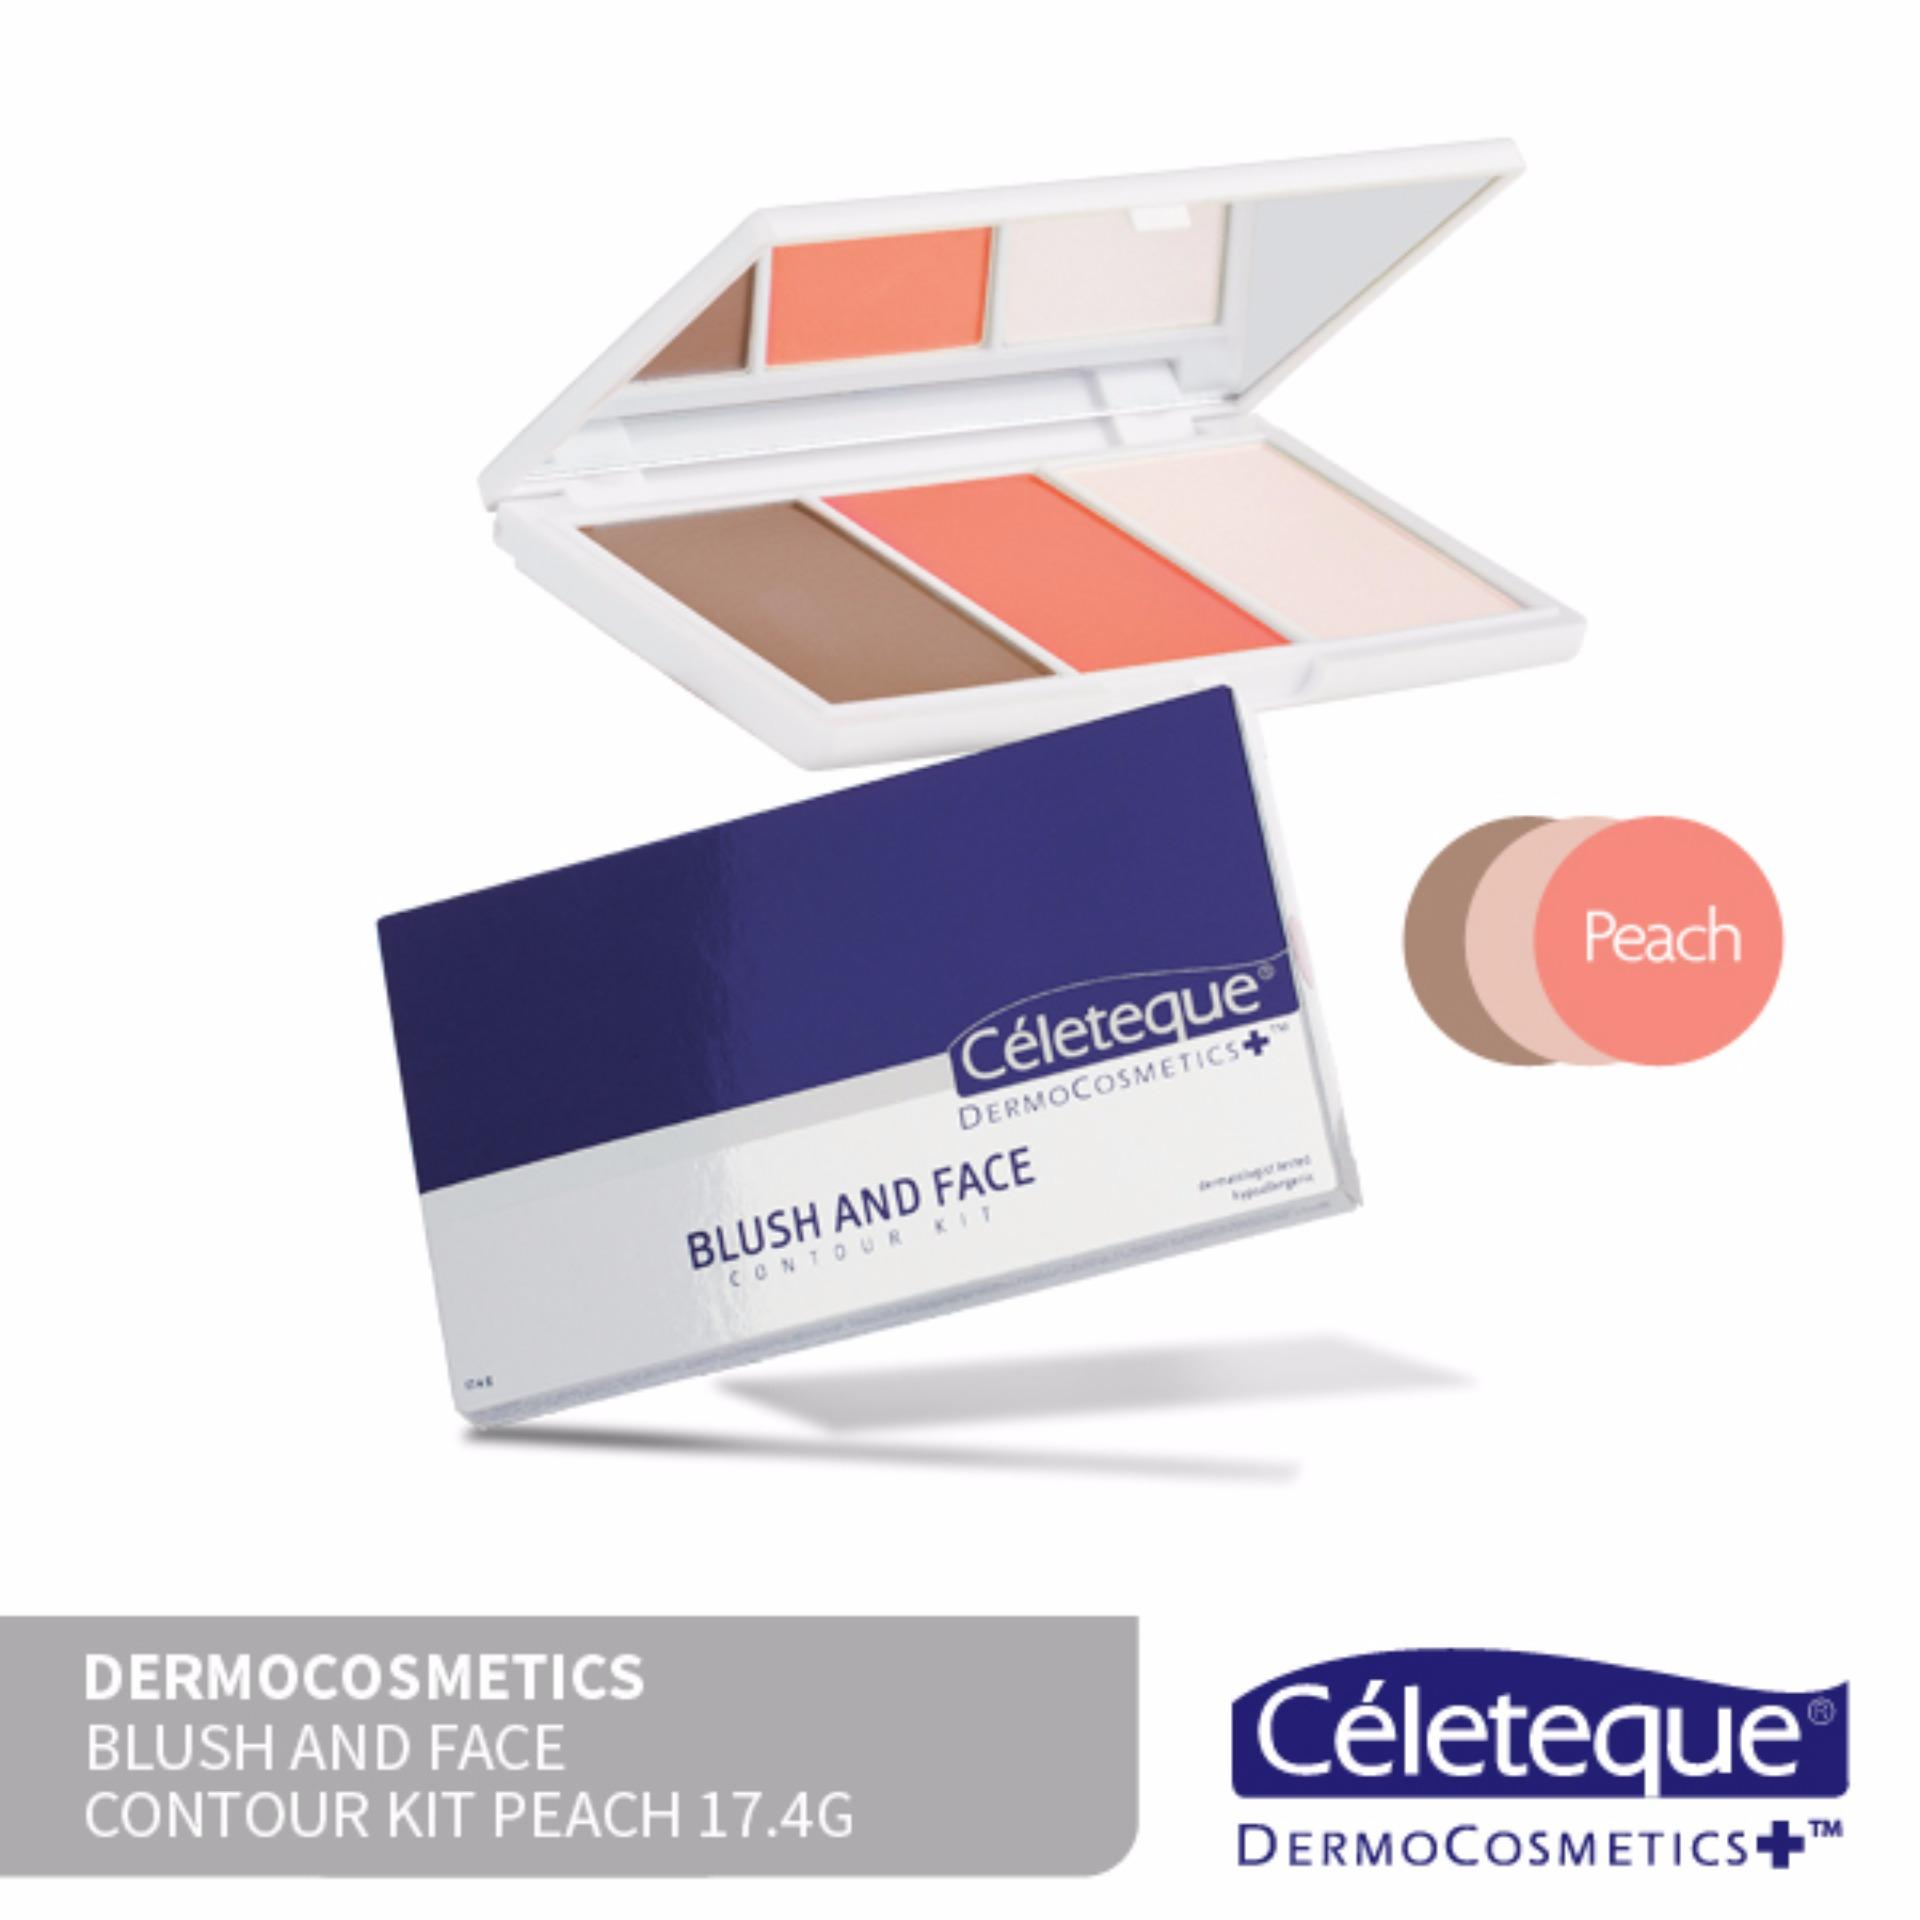 Céleteque Dermocosmetics Blush and Face Contour Kit 17.4g (Peach) Philippines